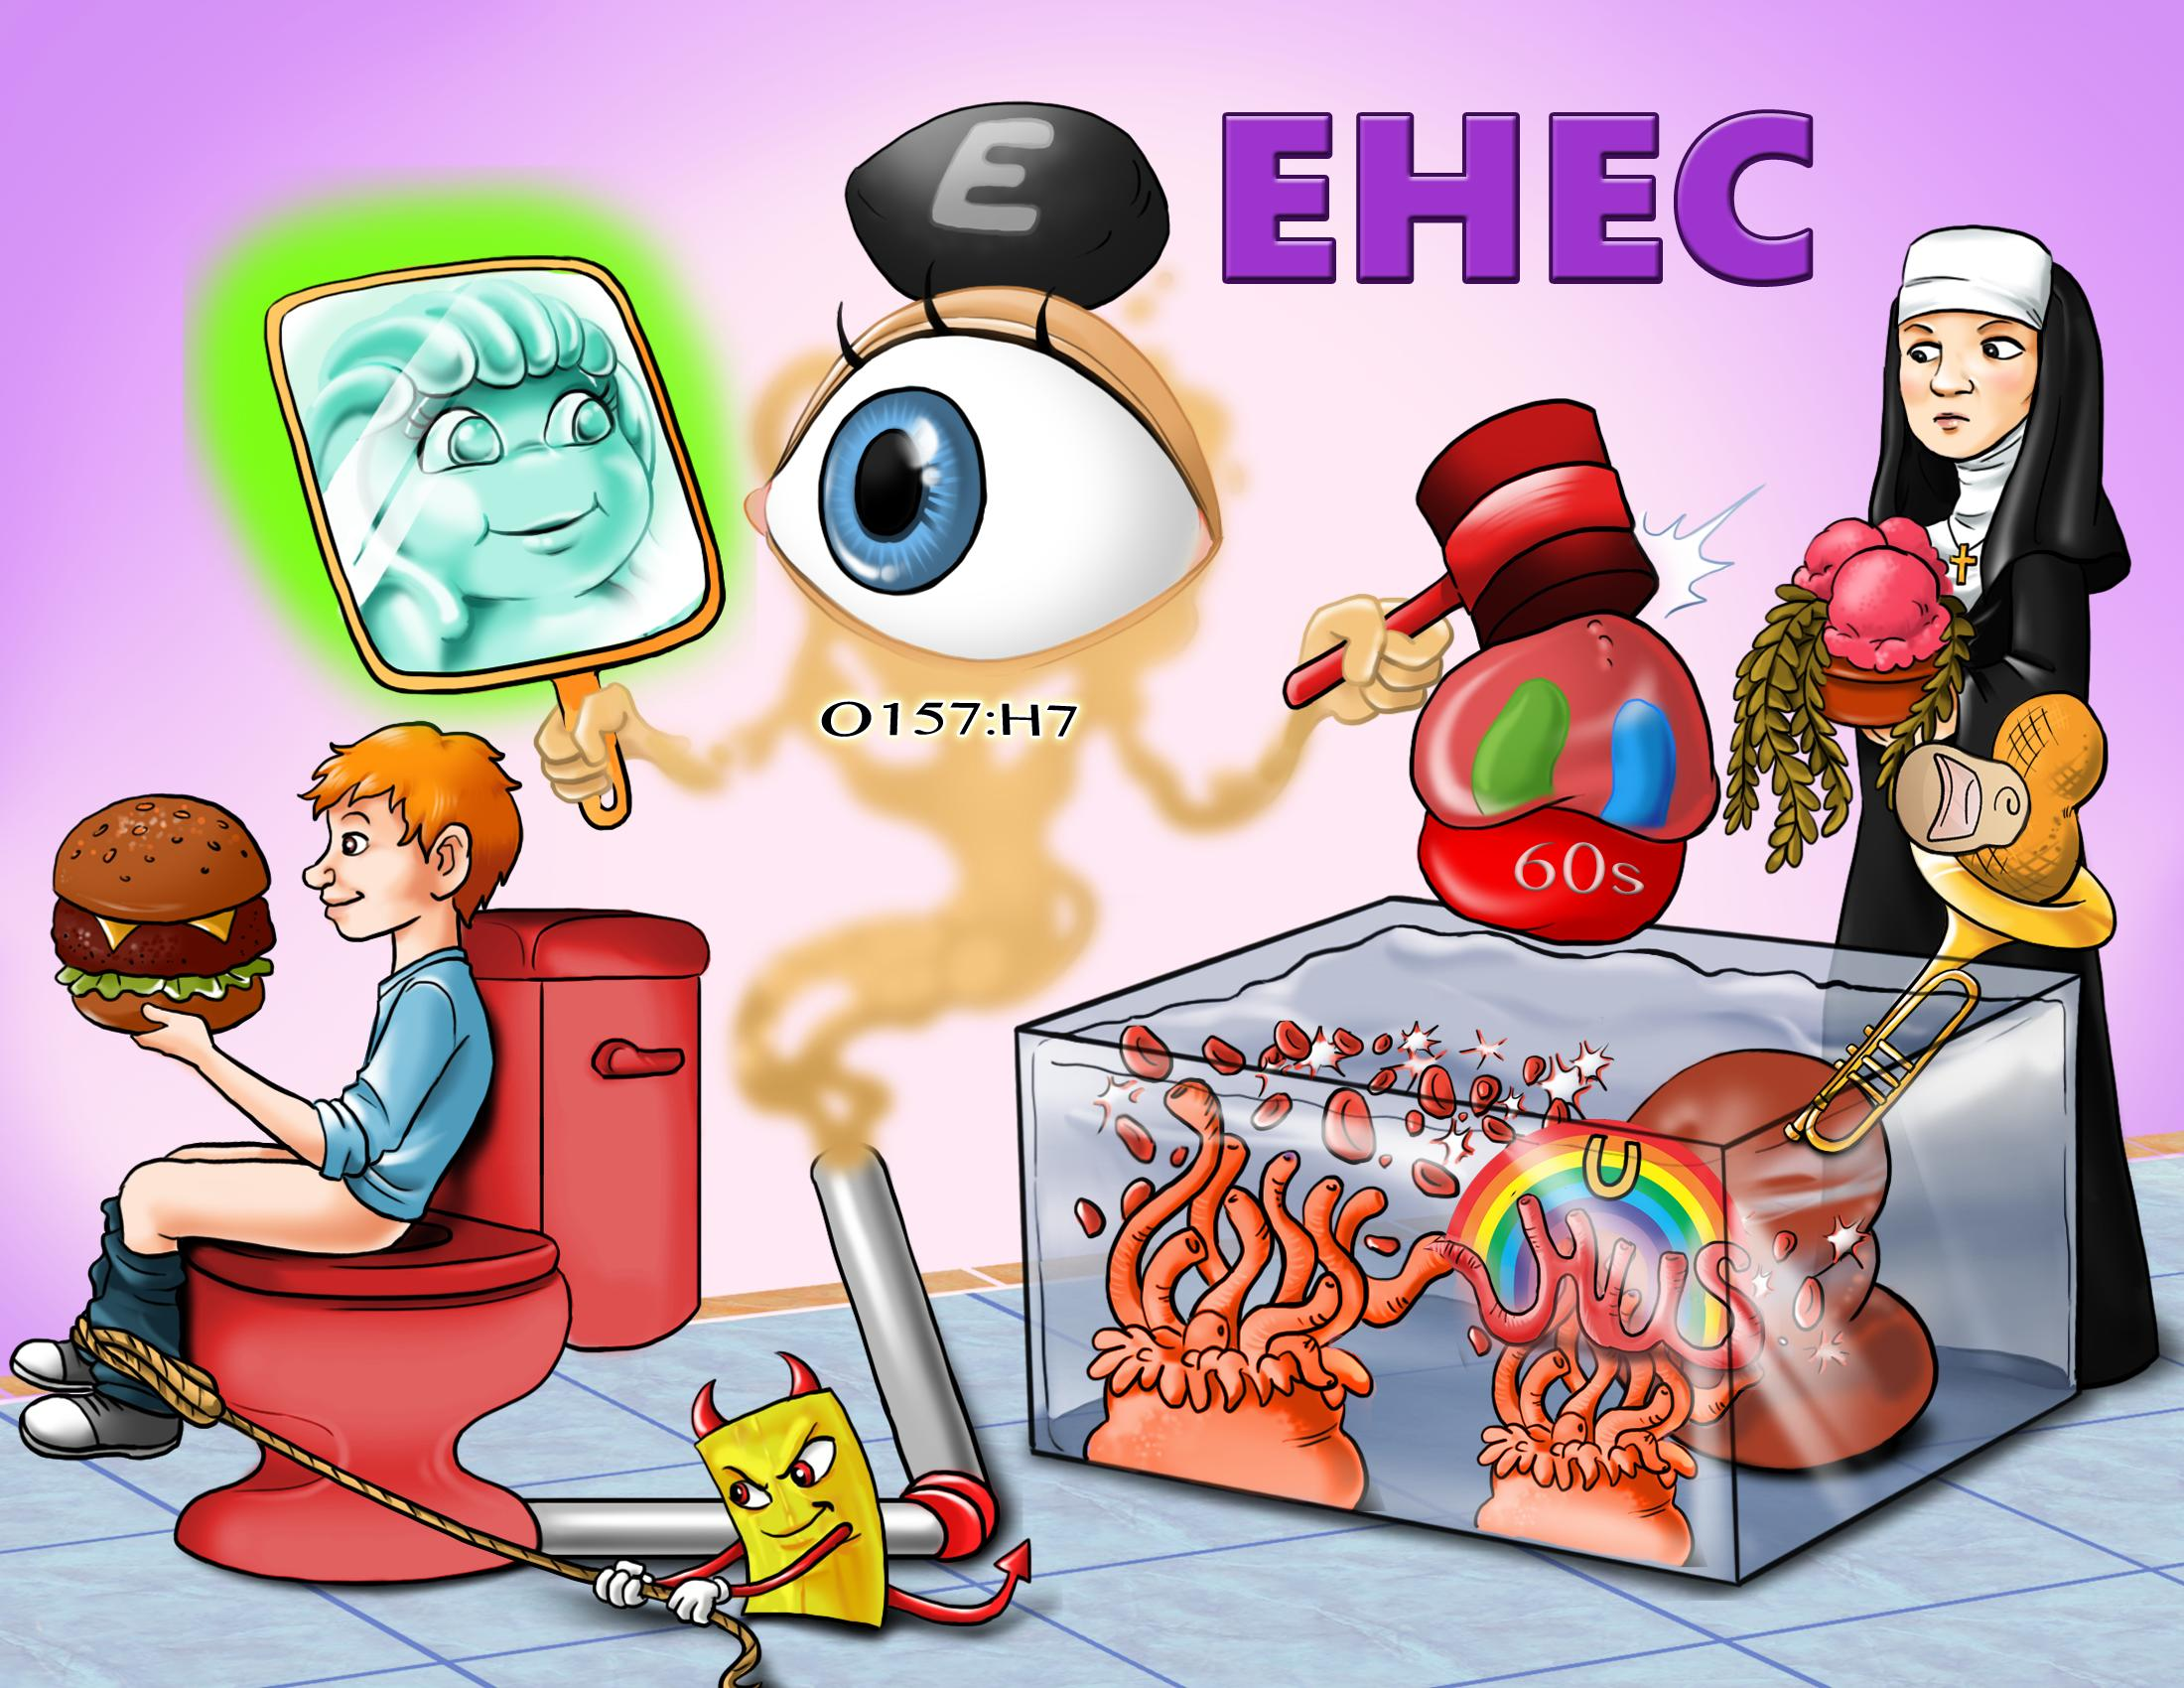 EHEC (Enterohemorrhagic E. Coli)